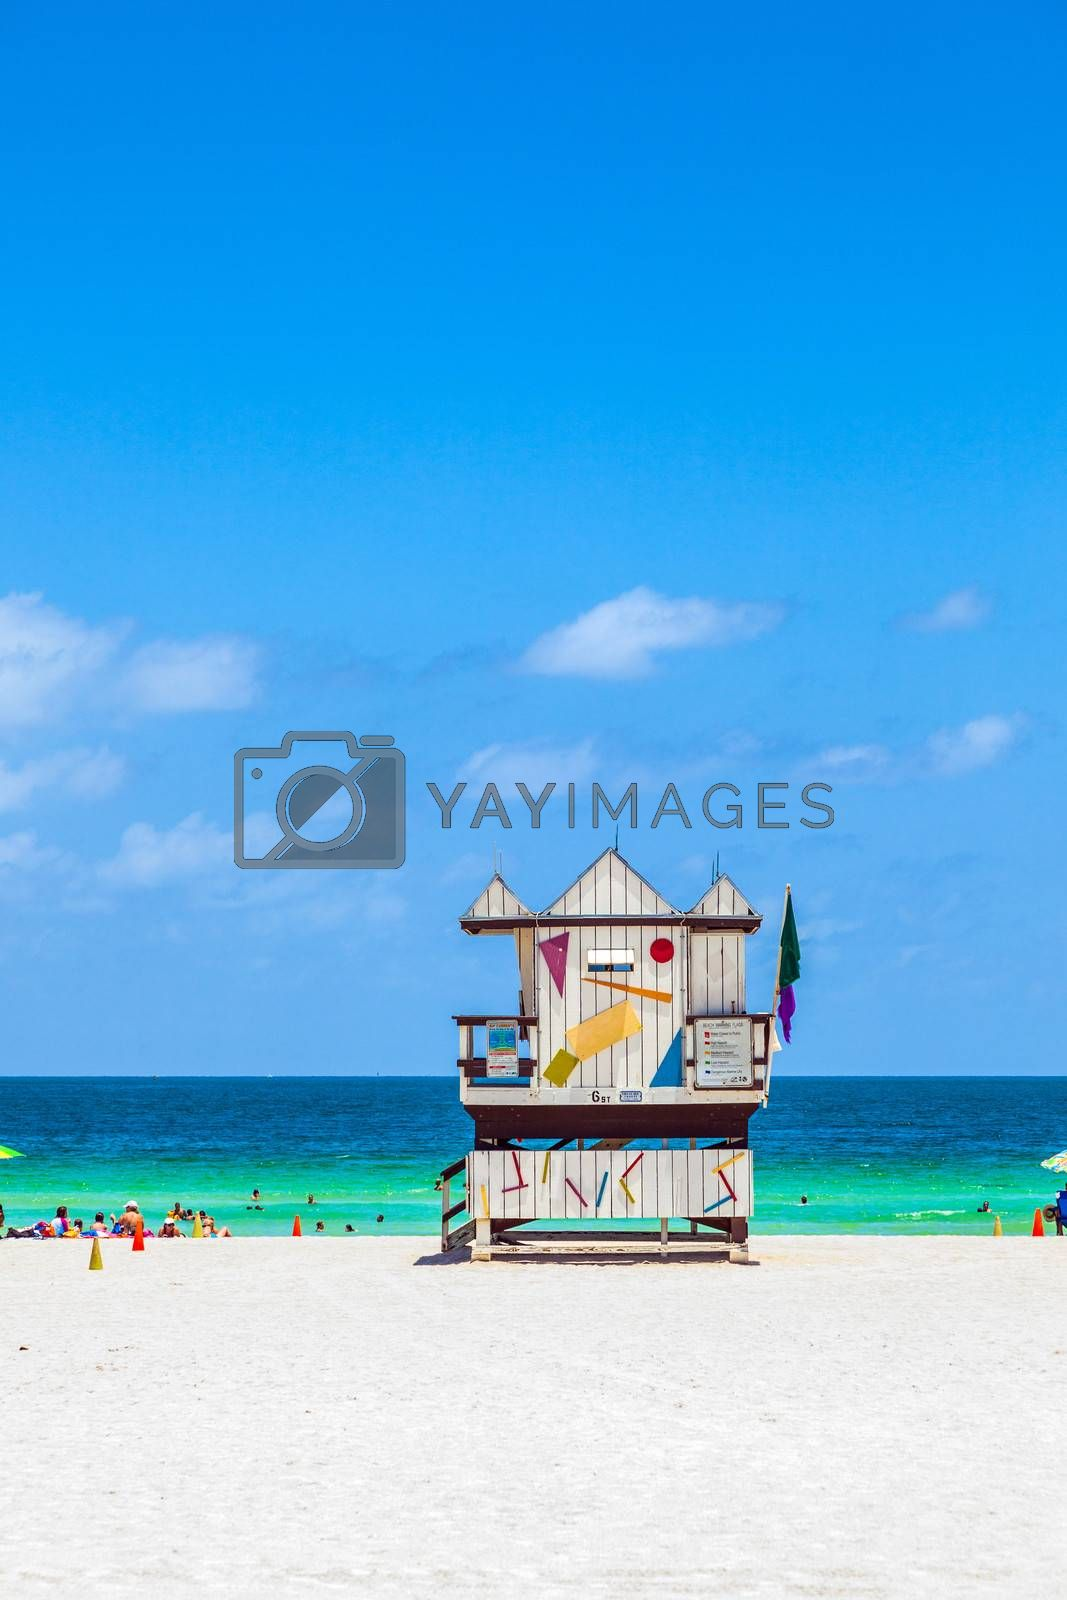 MIAMI, USA - JULY 27: people enjoy the beach on July 27, 2010 in Miami, USA. South beach is famous for its wooden lifeguard towers which are designed in Art deco style.